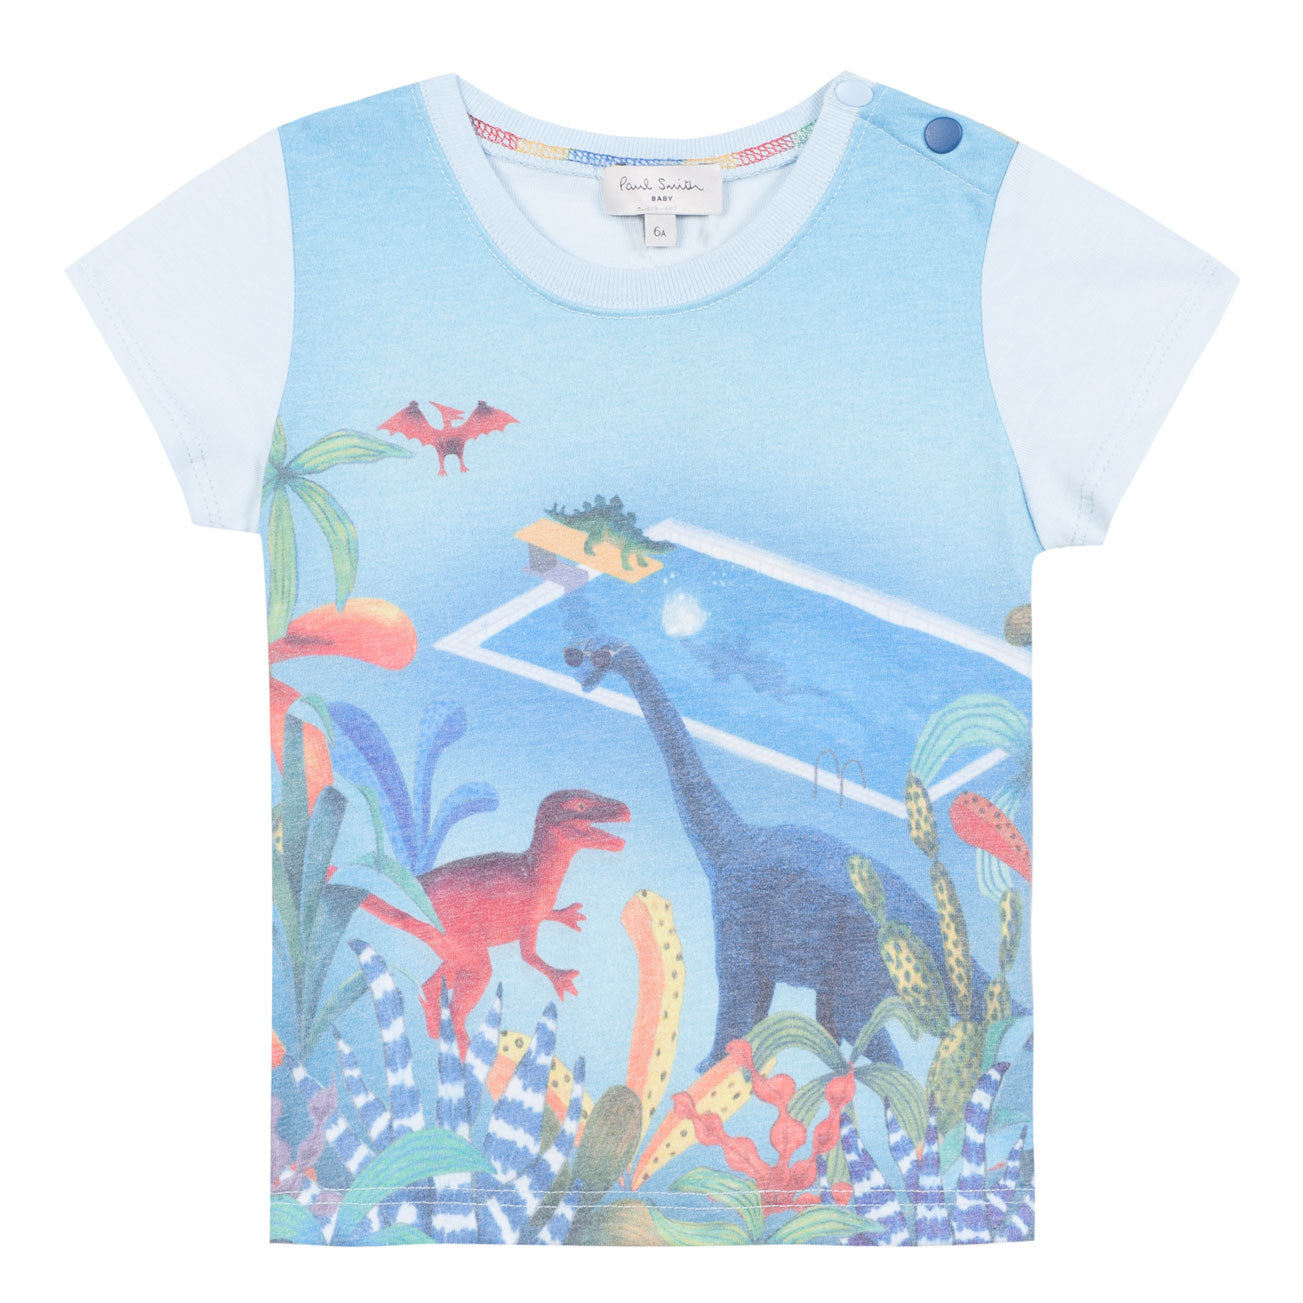 Paul Smith Baby Dinosaur Tee - Ladida